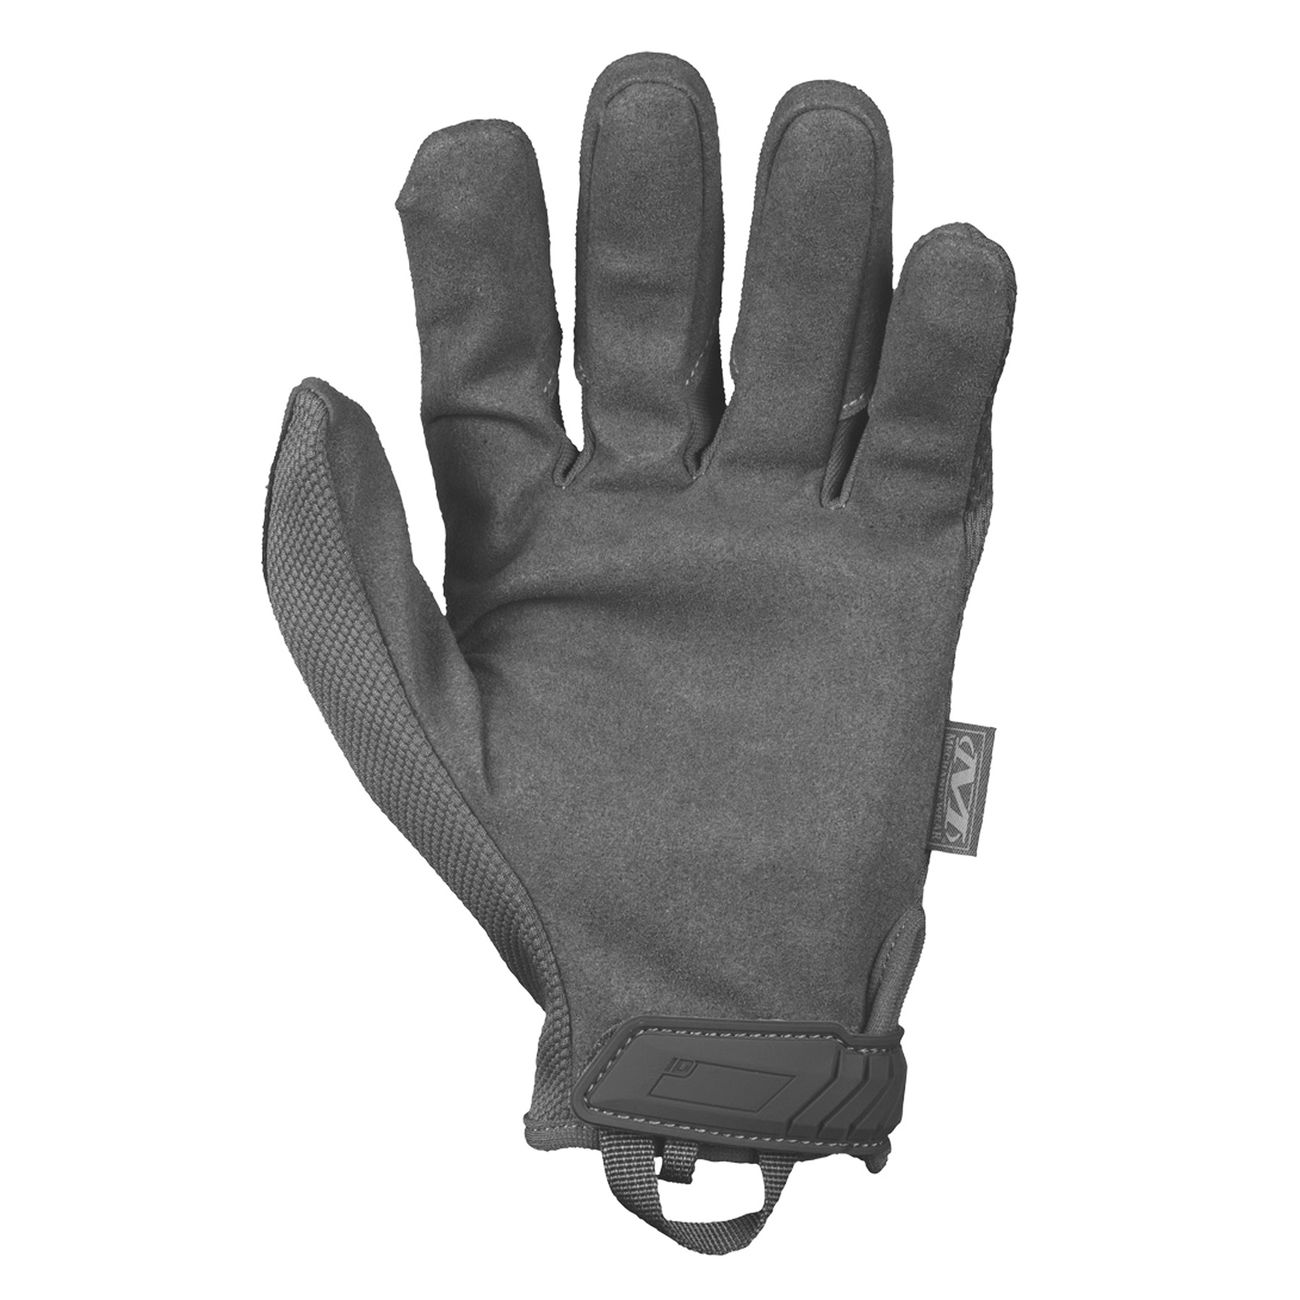 Mechanix Wear Original Glove Handschuhe grau 1